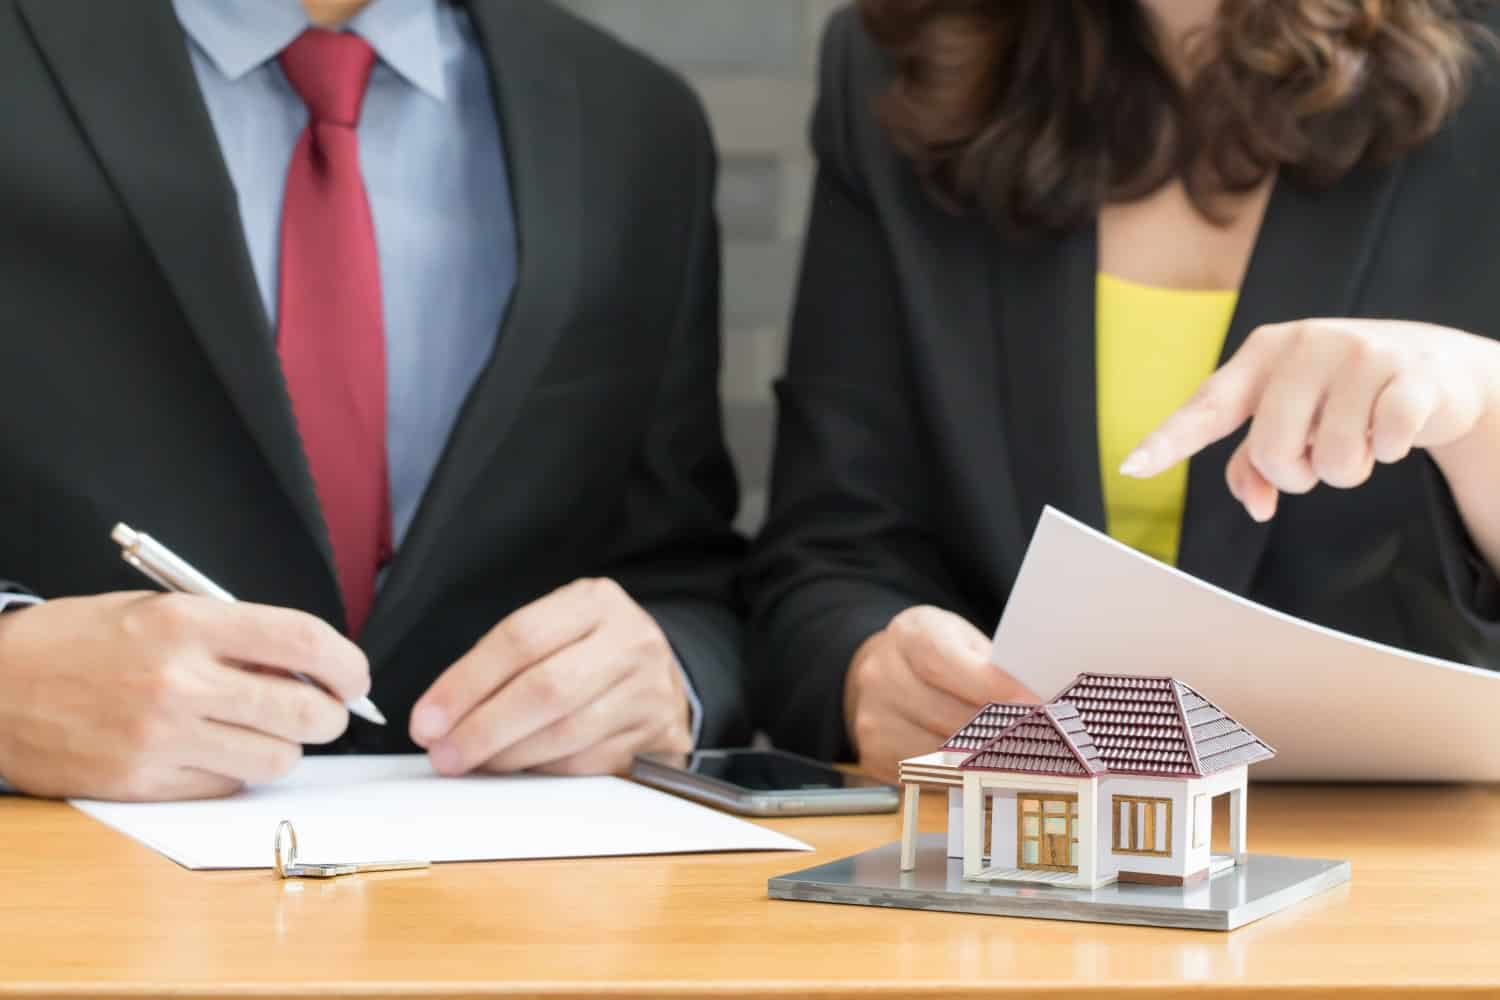 POSB Home Loan Review: Why You Should Get a POSB Loan for Your HDB Flat